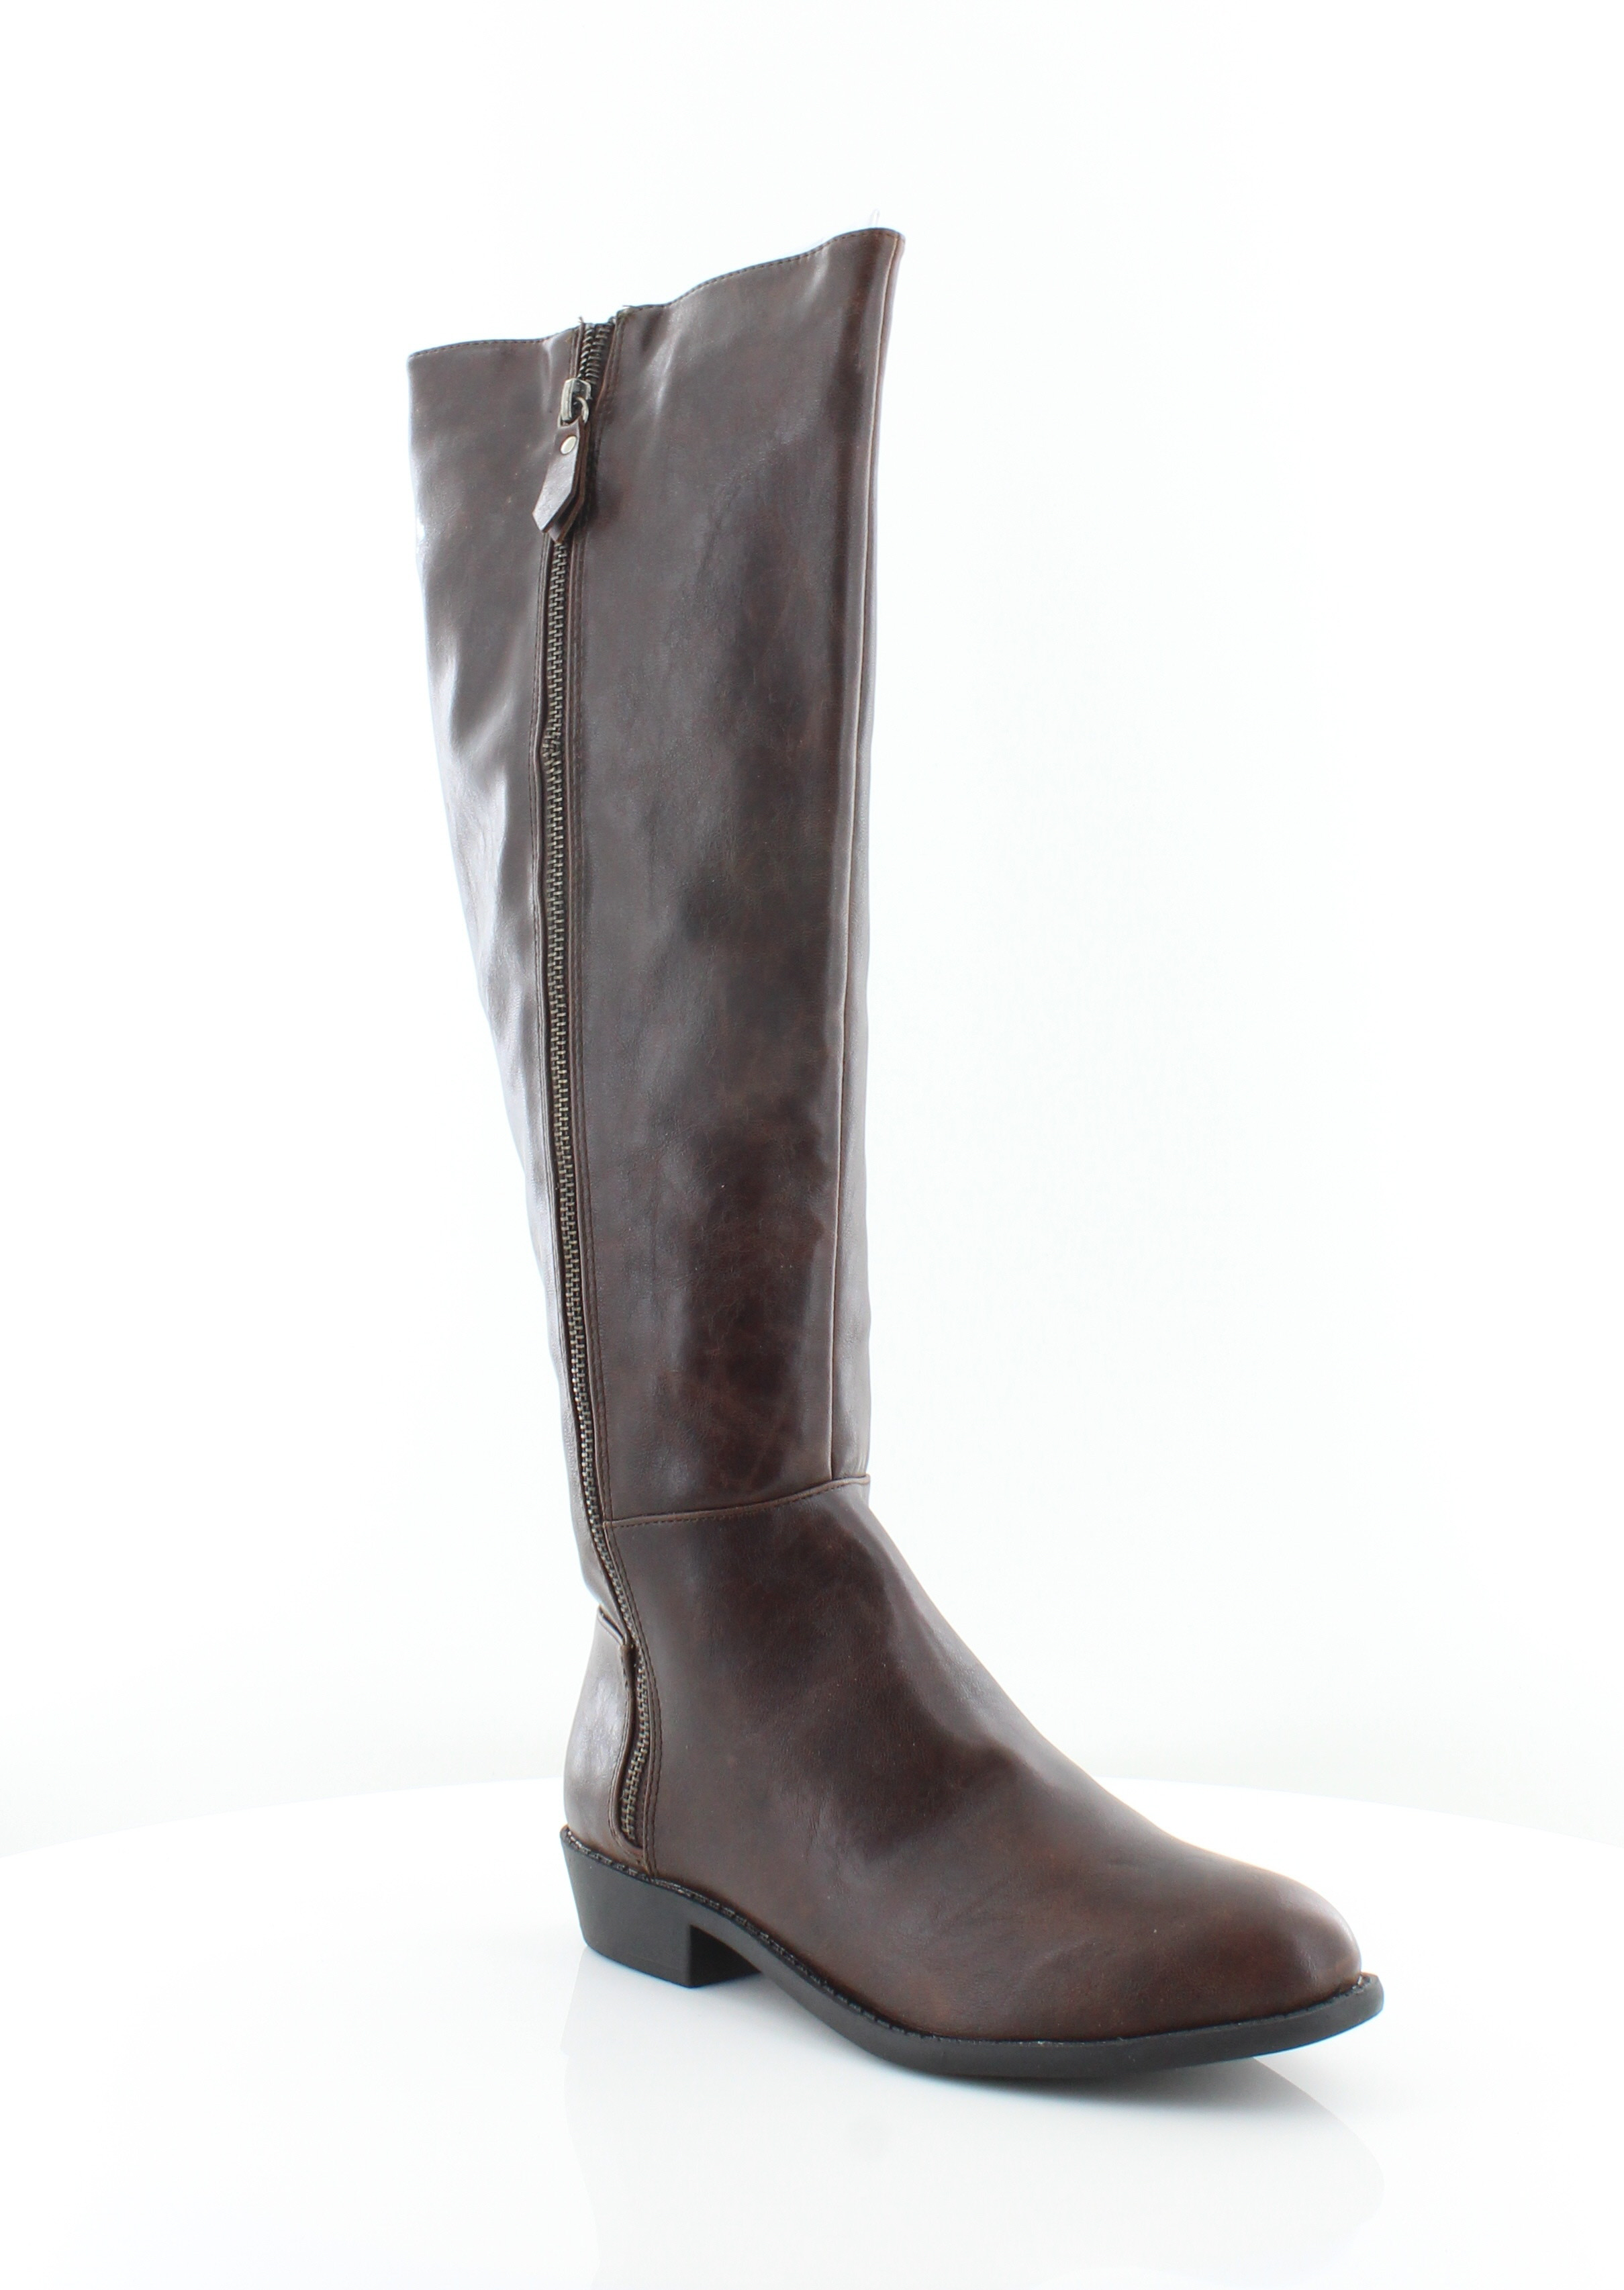 Penny Loves Kenny Dayton Women's Boots Brown Size 6.5 M